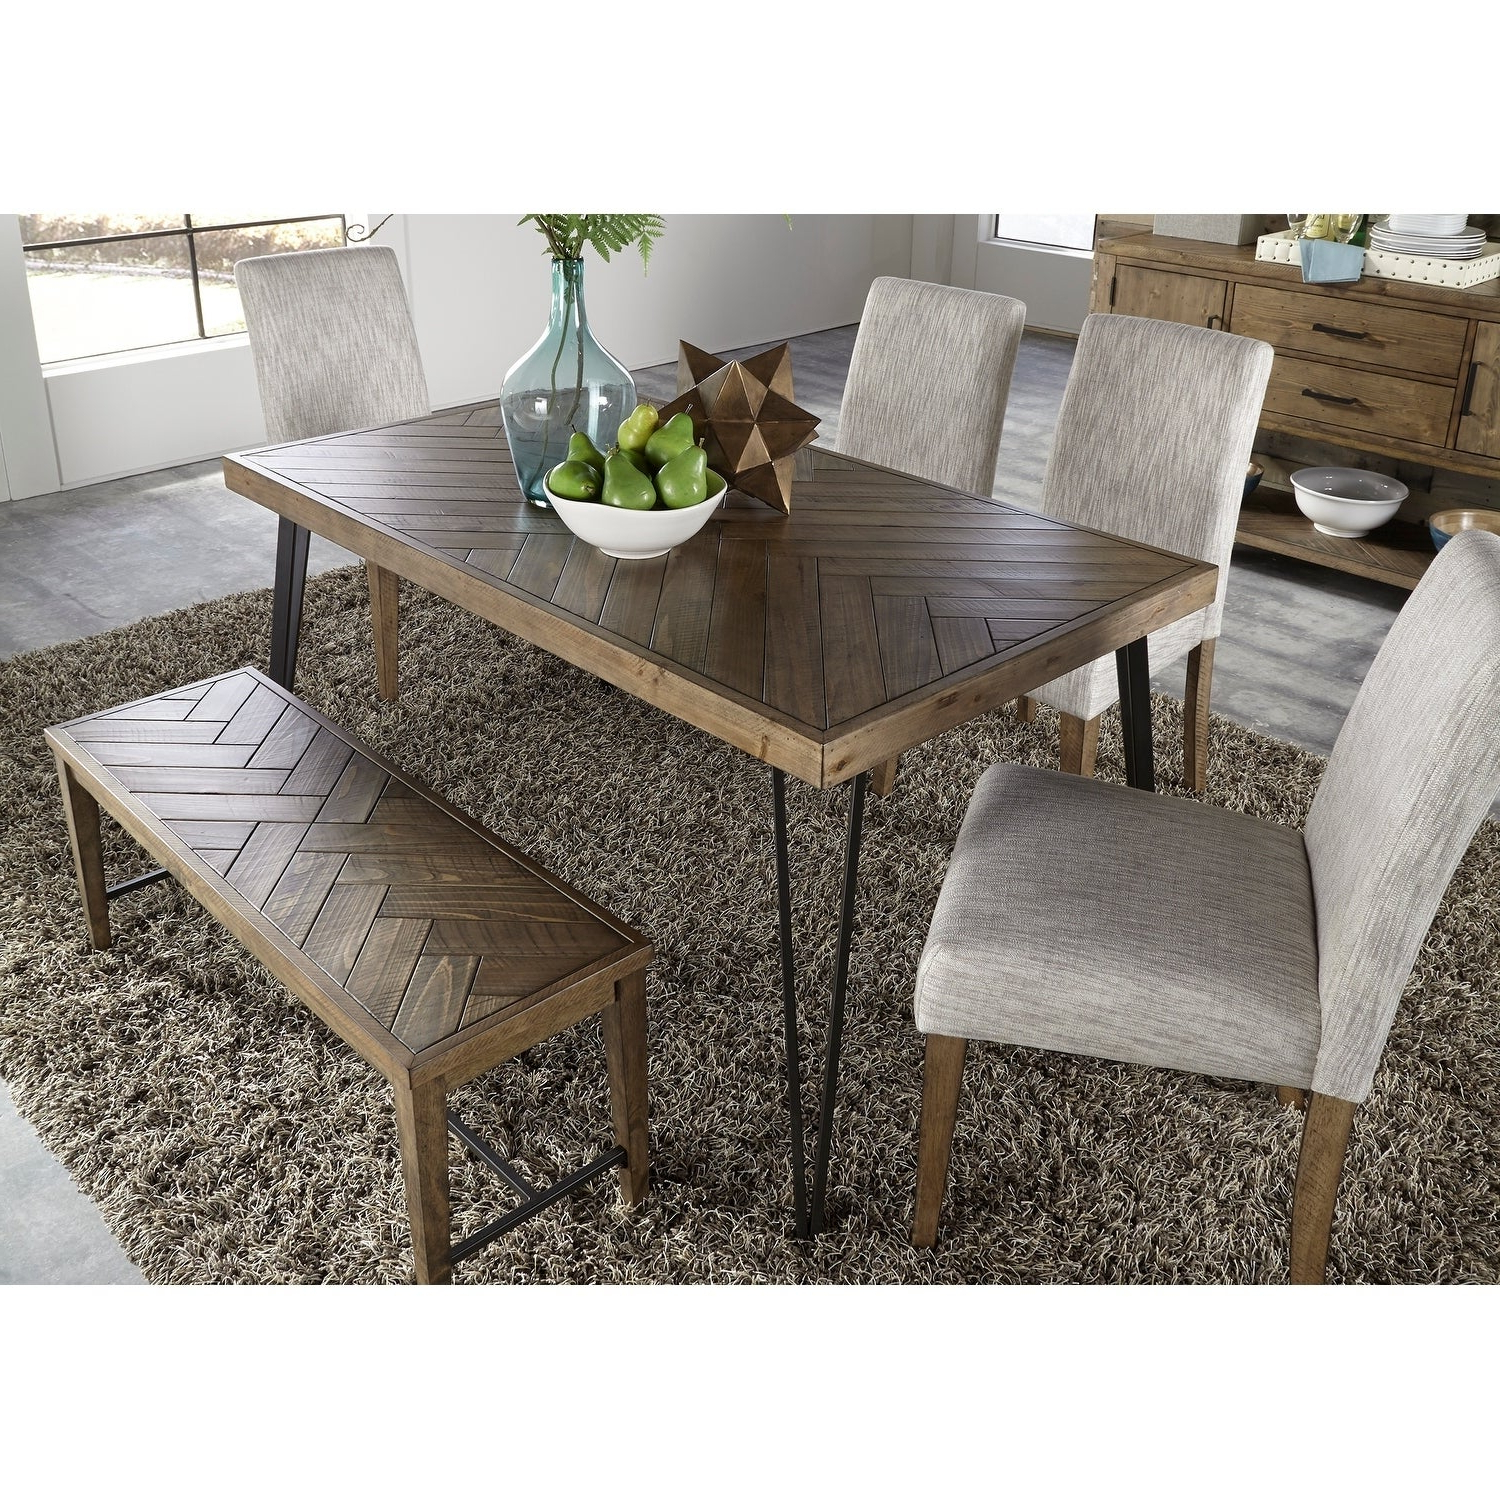 North Reading 5 Piece Dining Table Sets In Most Current Buy Kitchen & Dining Room Tables Online At Overstock (View 11 of 20)